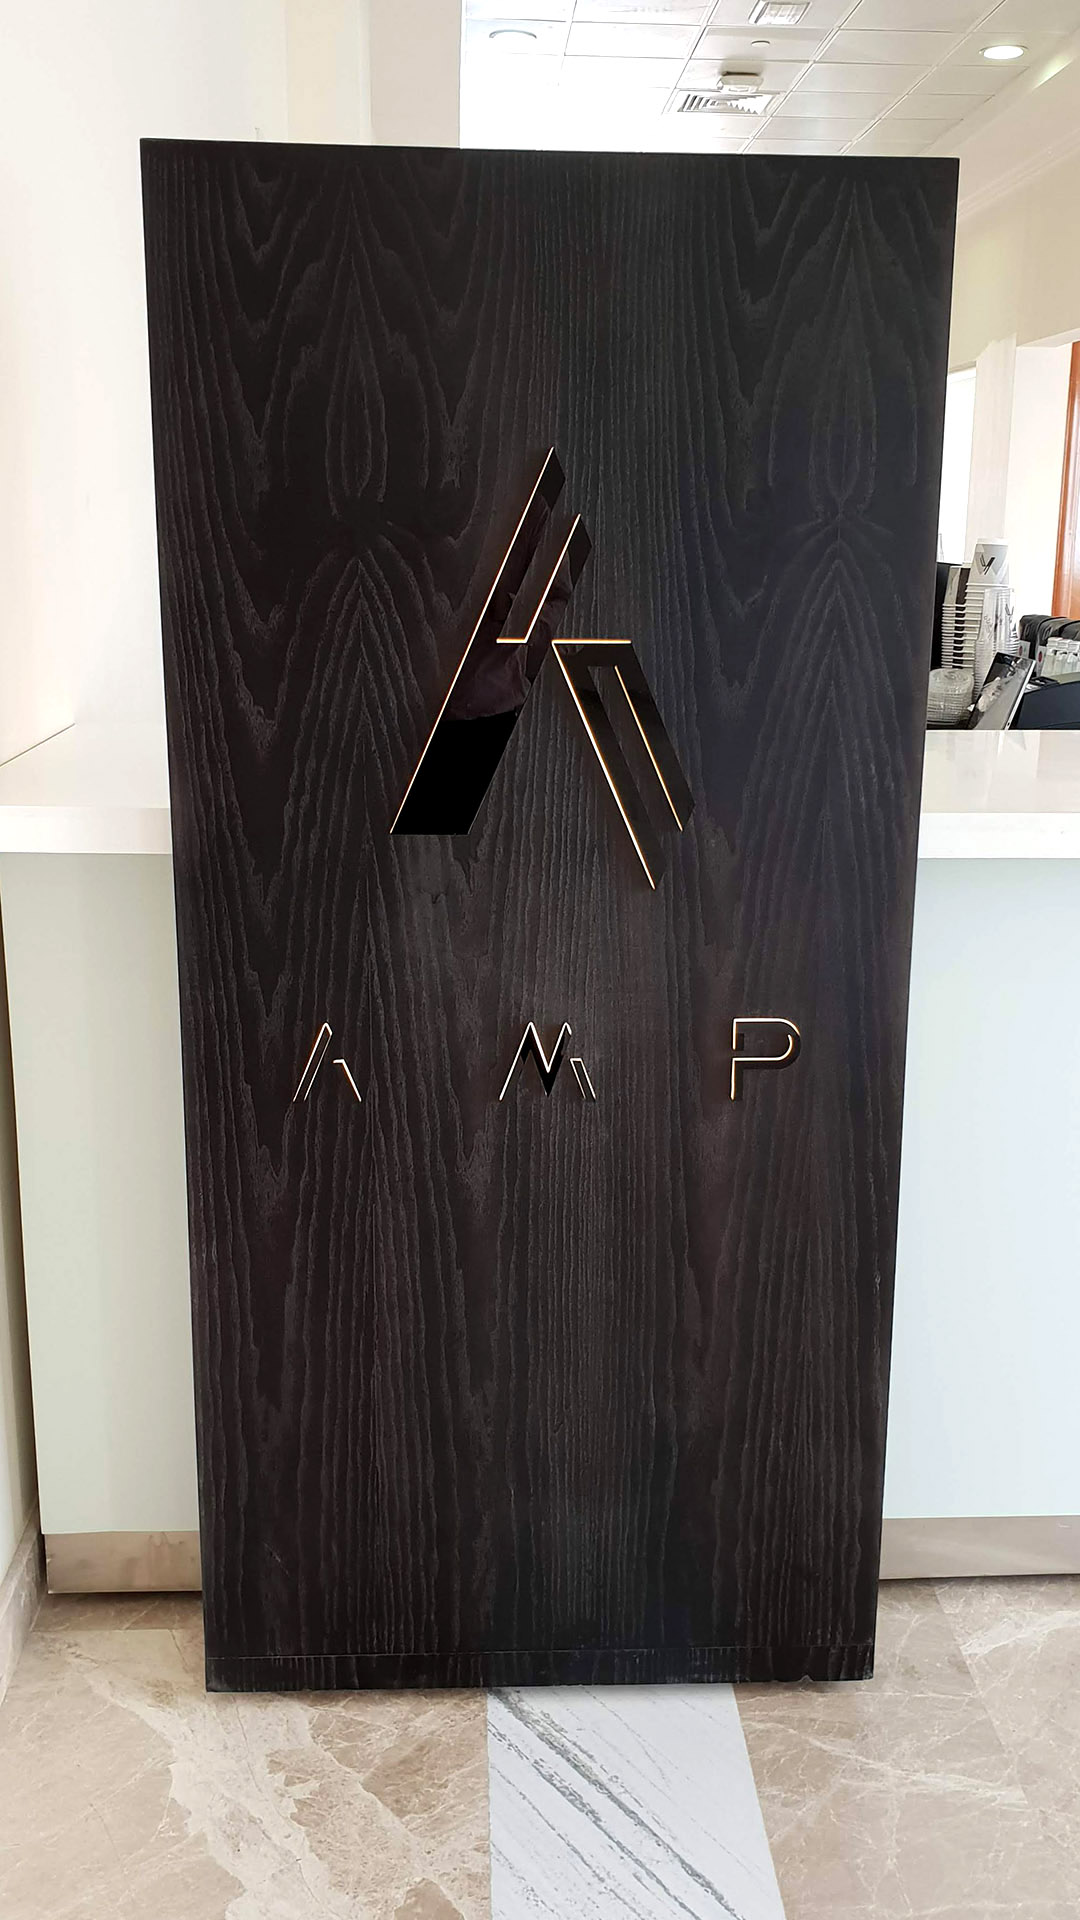 A custom Coffee Kiosk for AMP Coffee designed, fabricated and installed by ME Visual, Qatar